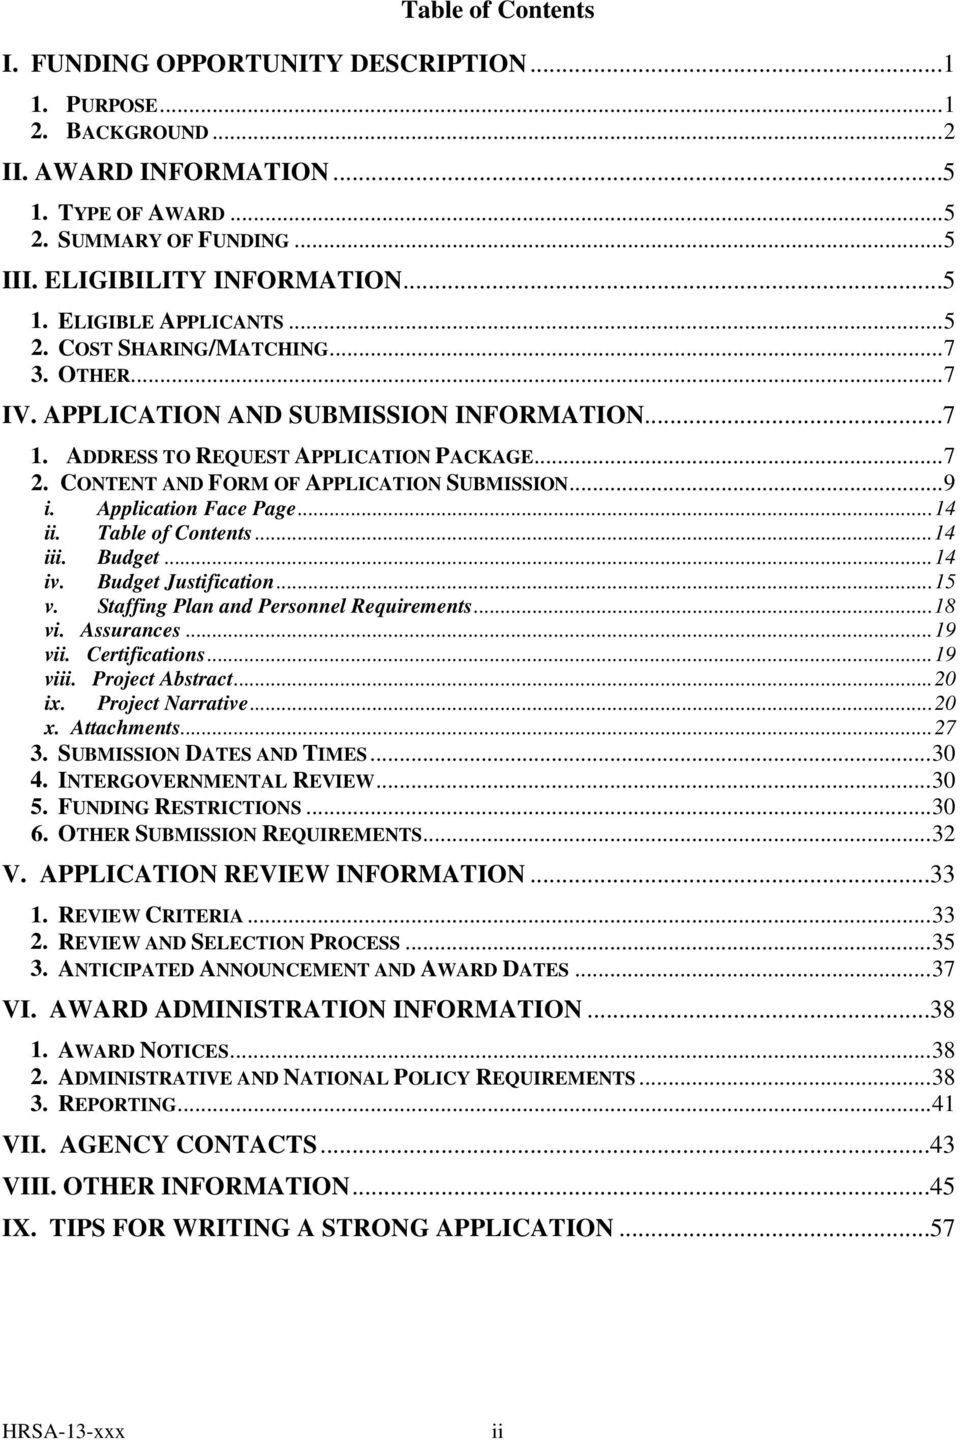 Application Face Page... 14 ii. Table of Contents... 14 iii. Budget... 14 iv. Budget Justification... 15 v. Staffing Plan and Personnel Requirements... 18 vi. Assurances... 19 vii. Certifications.